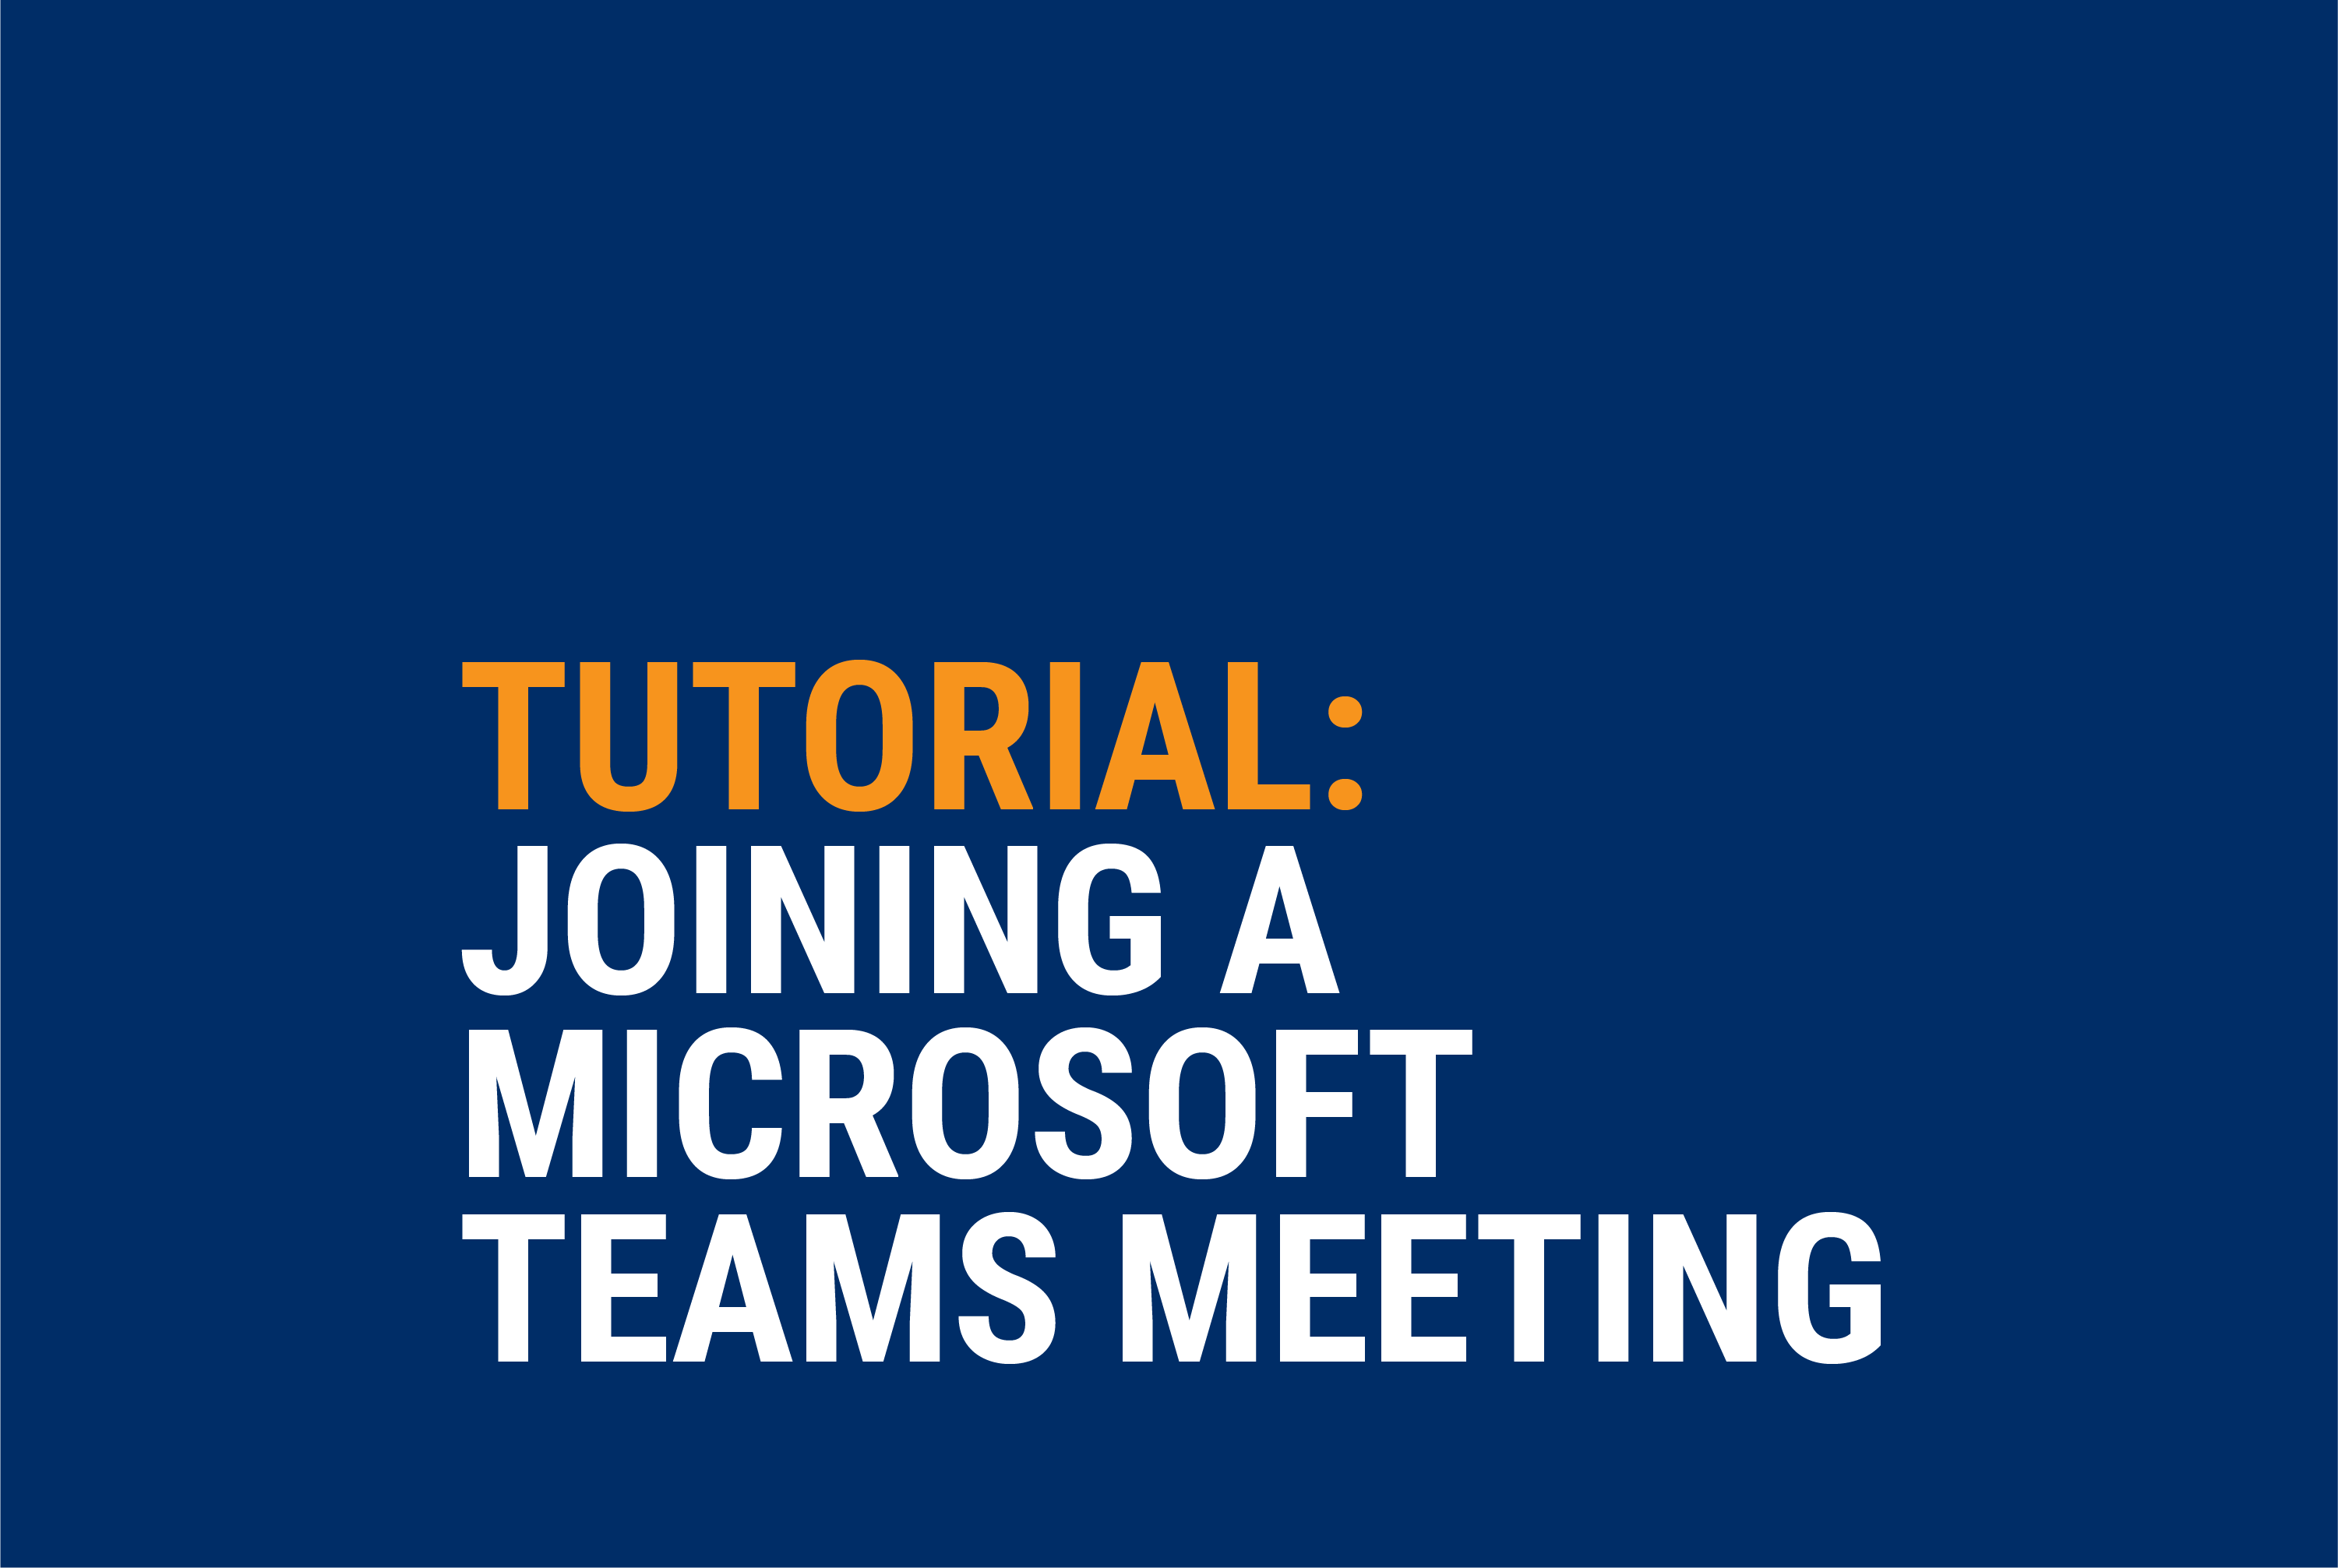 Tutorial: Joining a Microsoft Teams Meeting